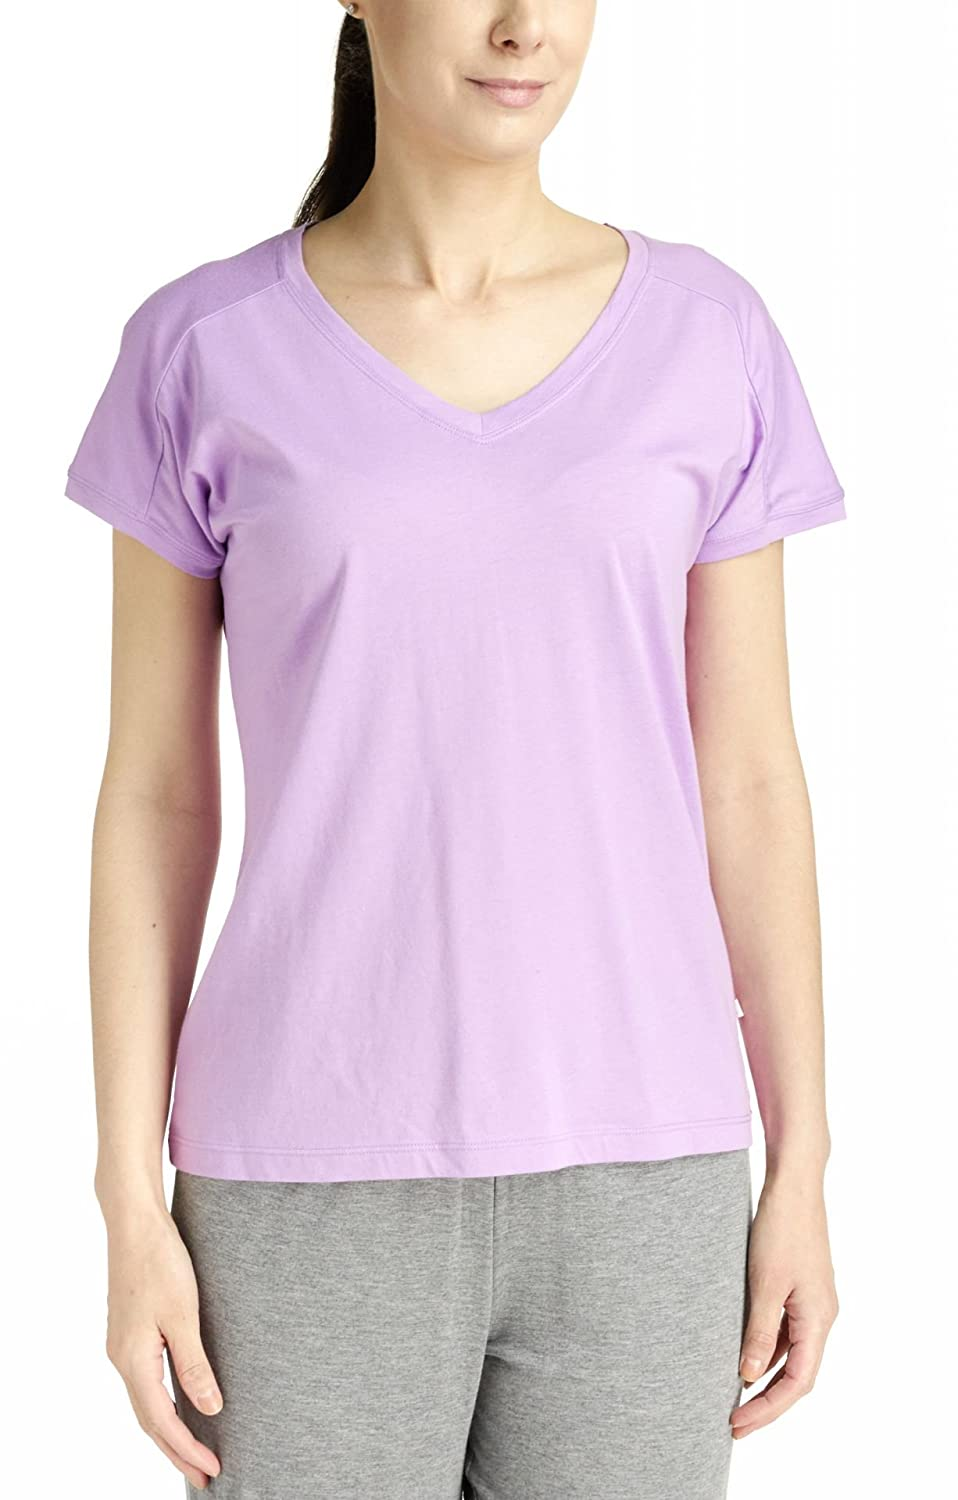 French Dressing Sleepwear Women's Island Splendor Short Sleeve V-Neck Top